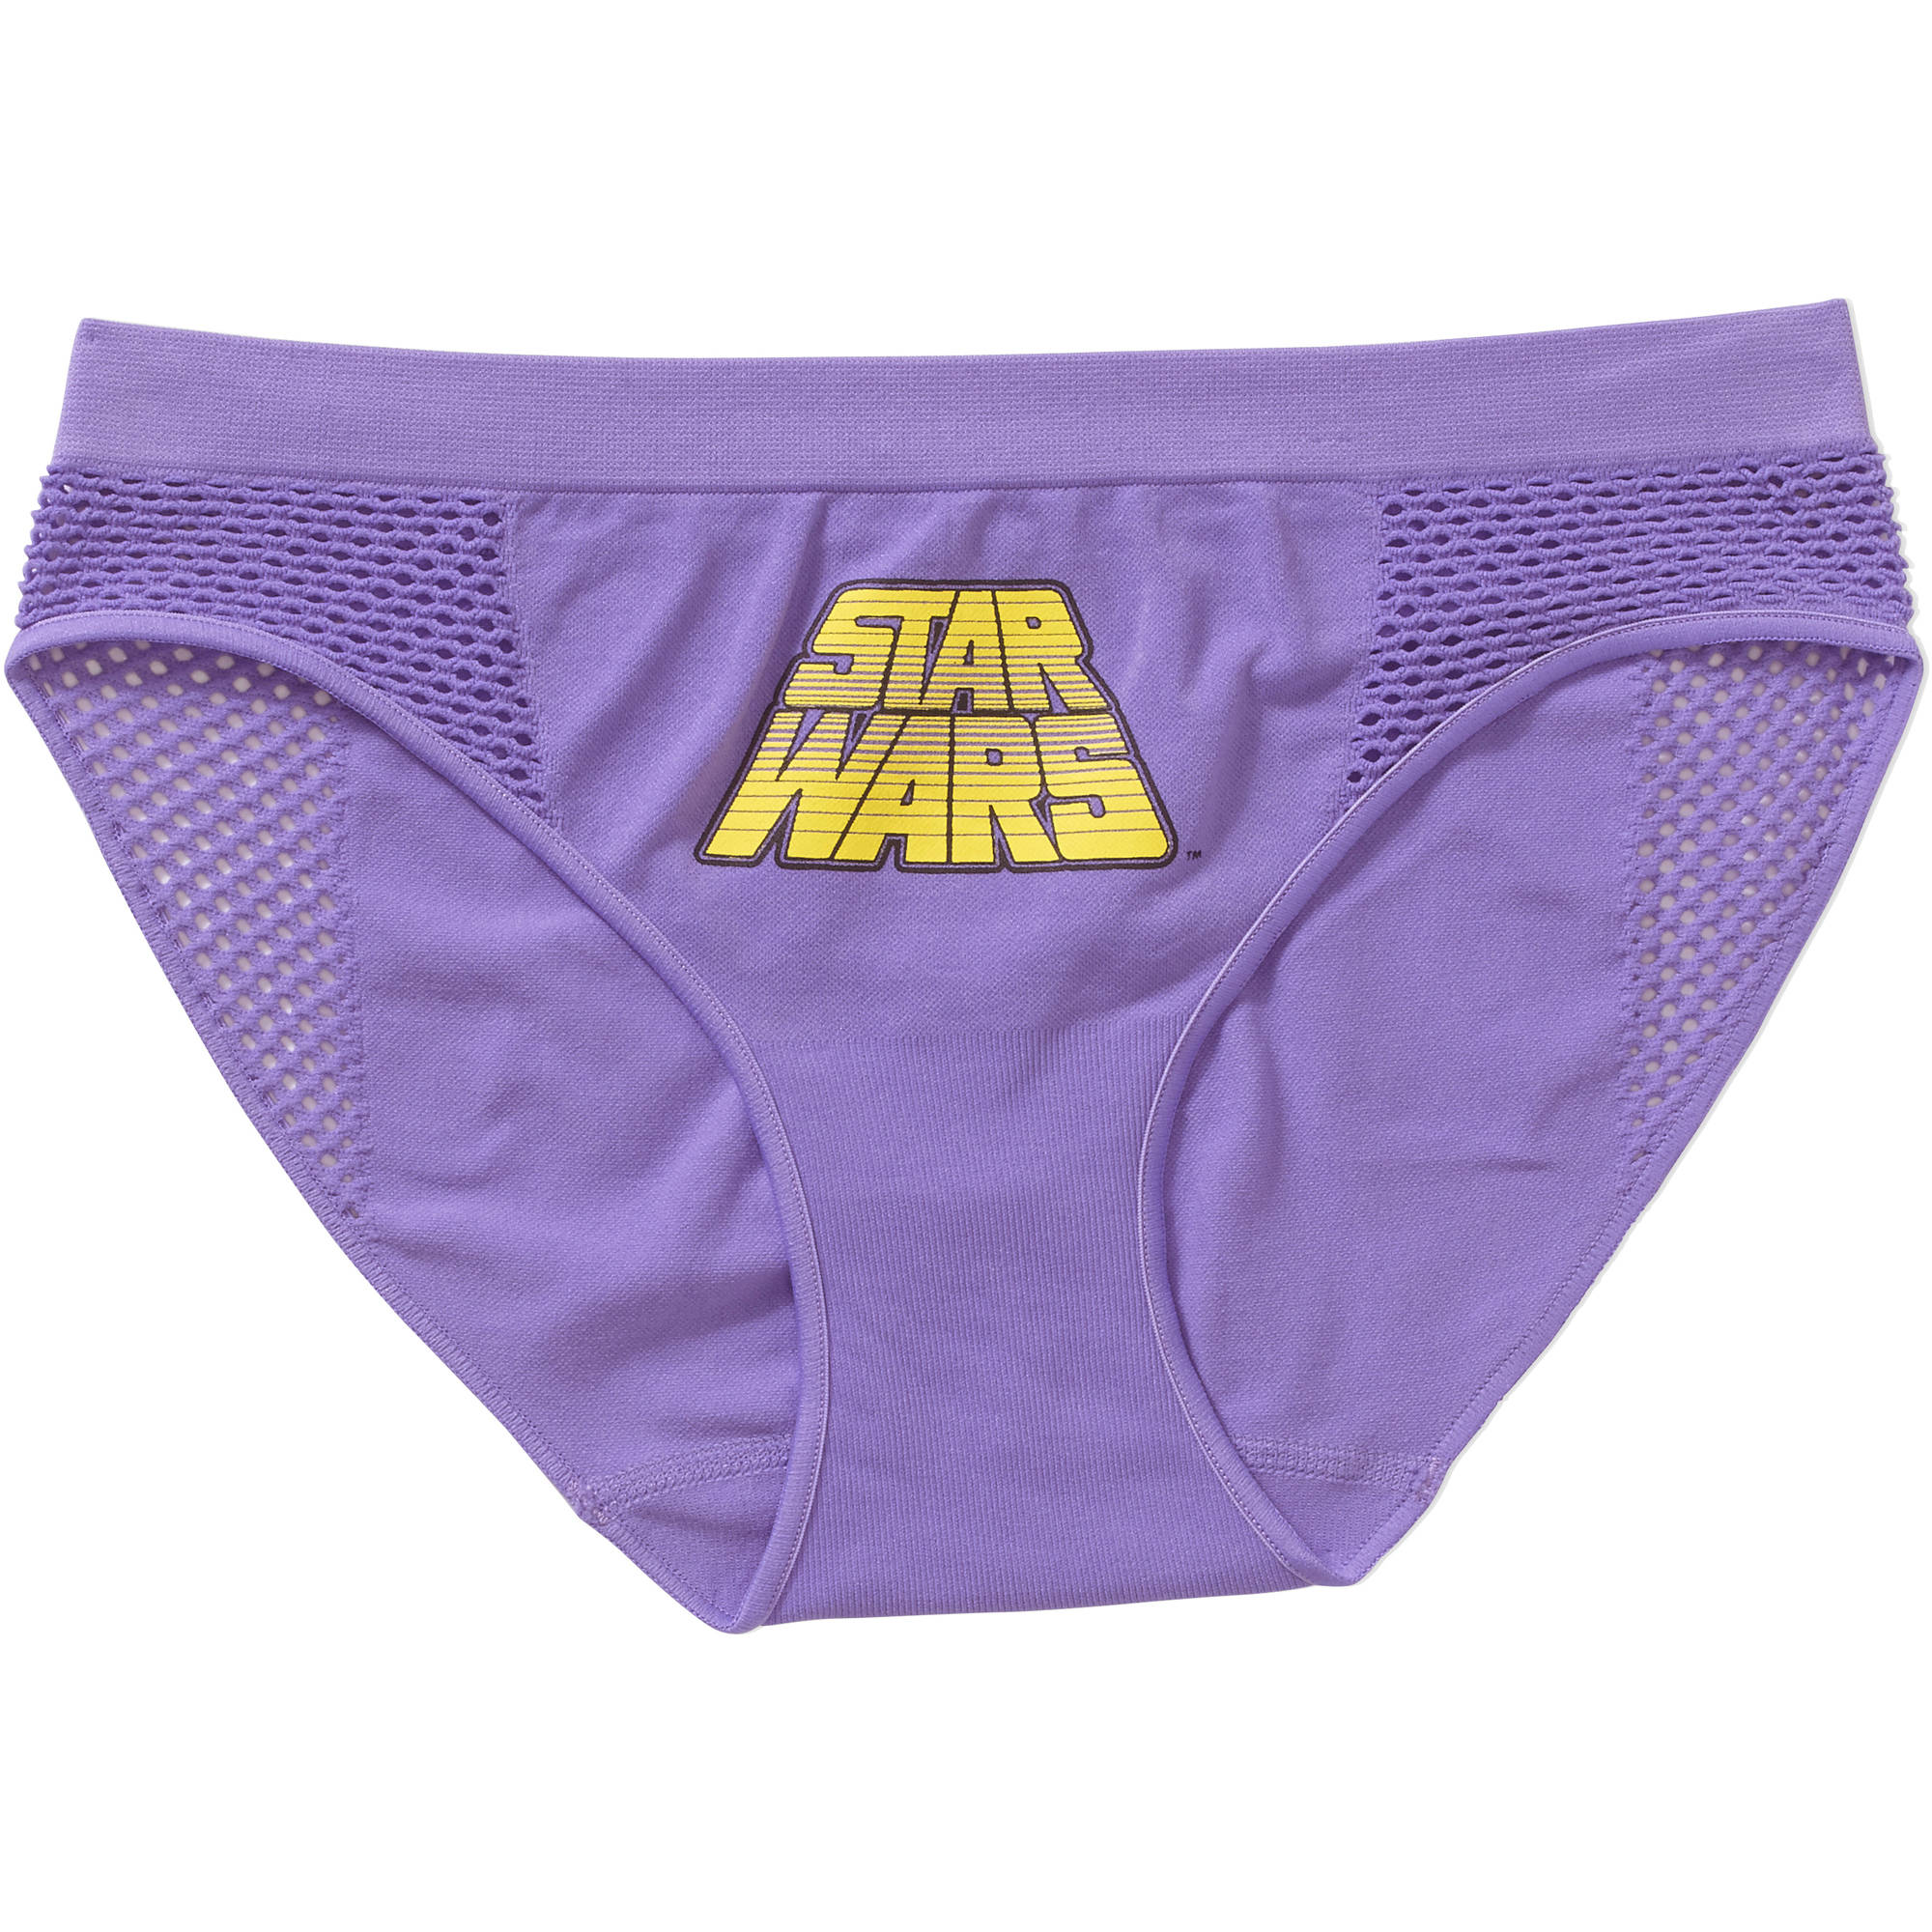 Star Wars Juniors License Seamless Bikini Panty